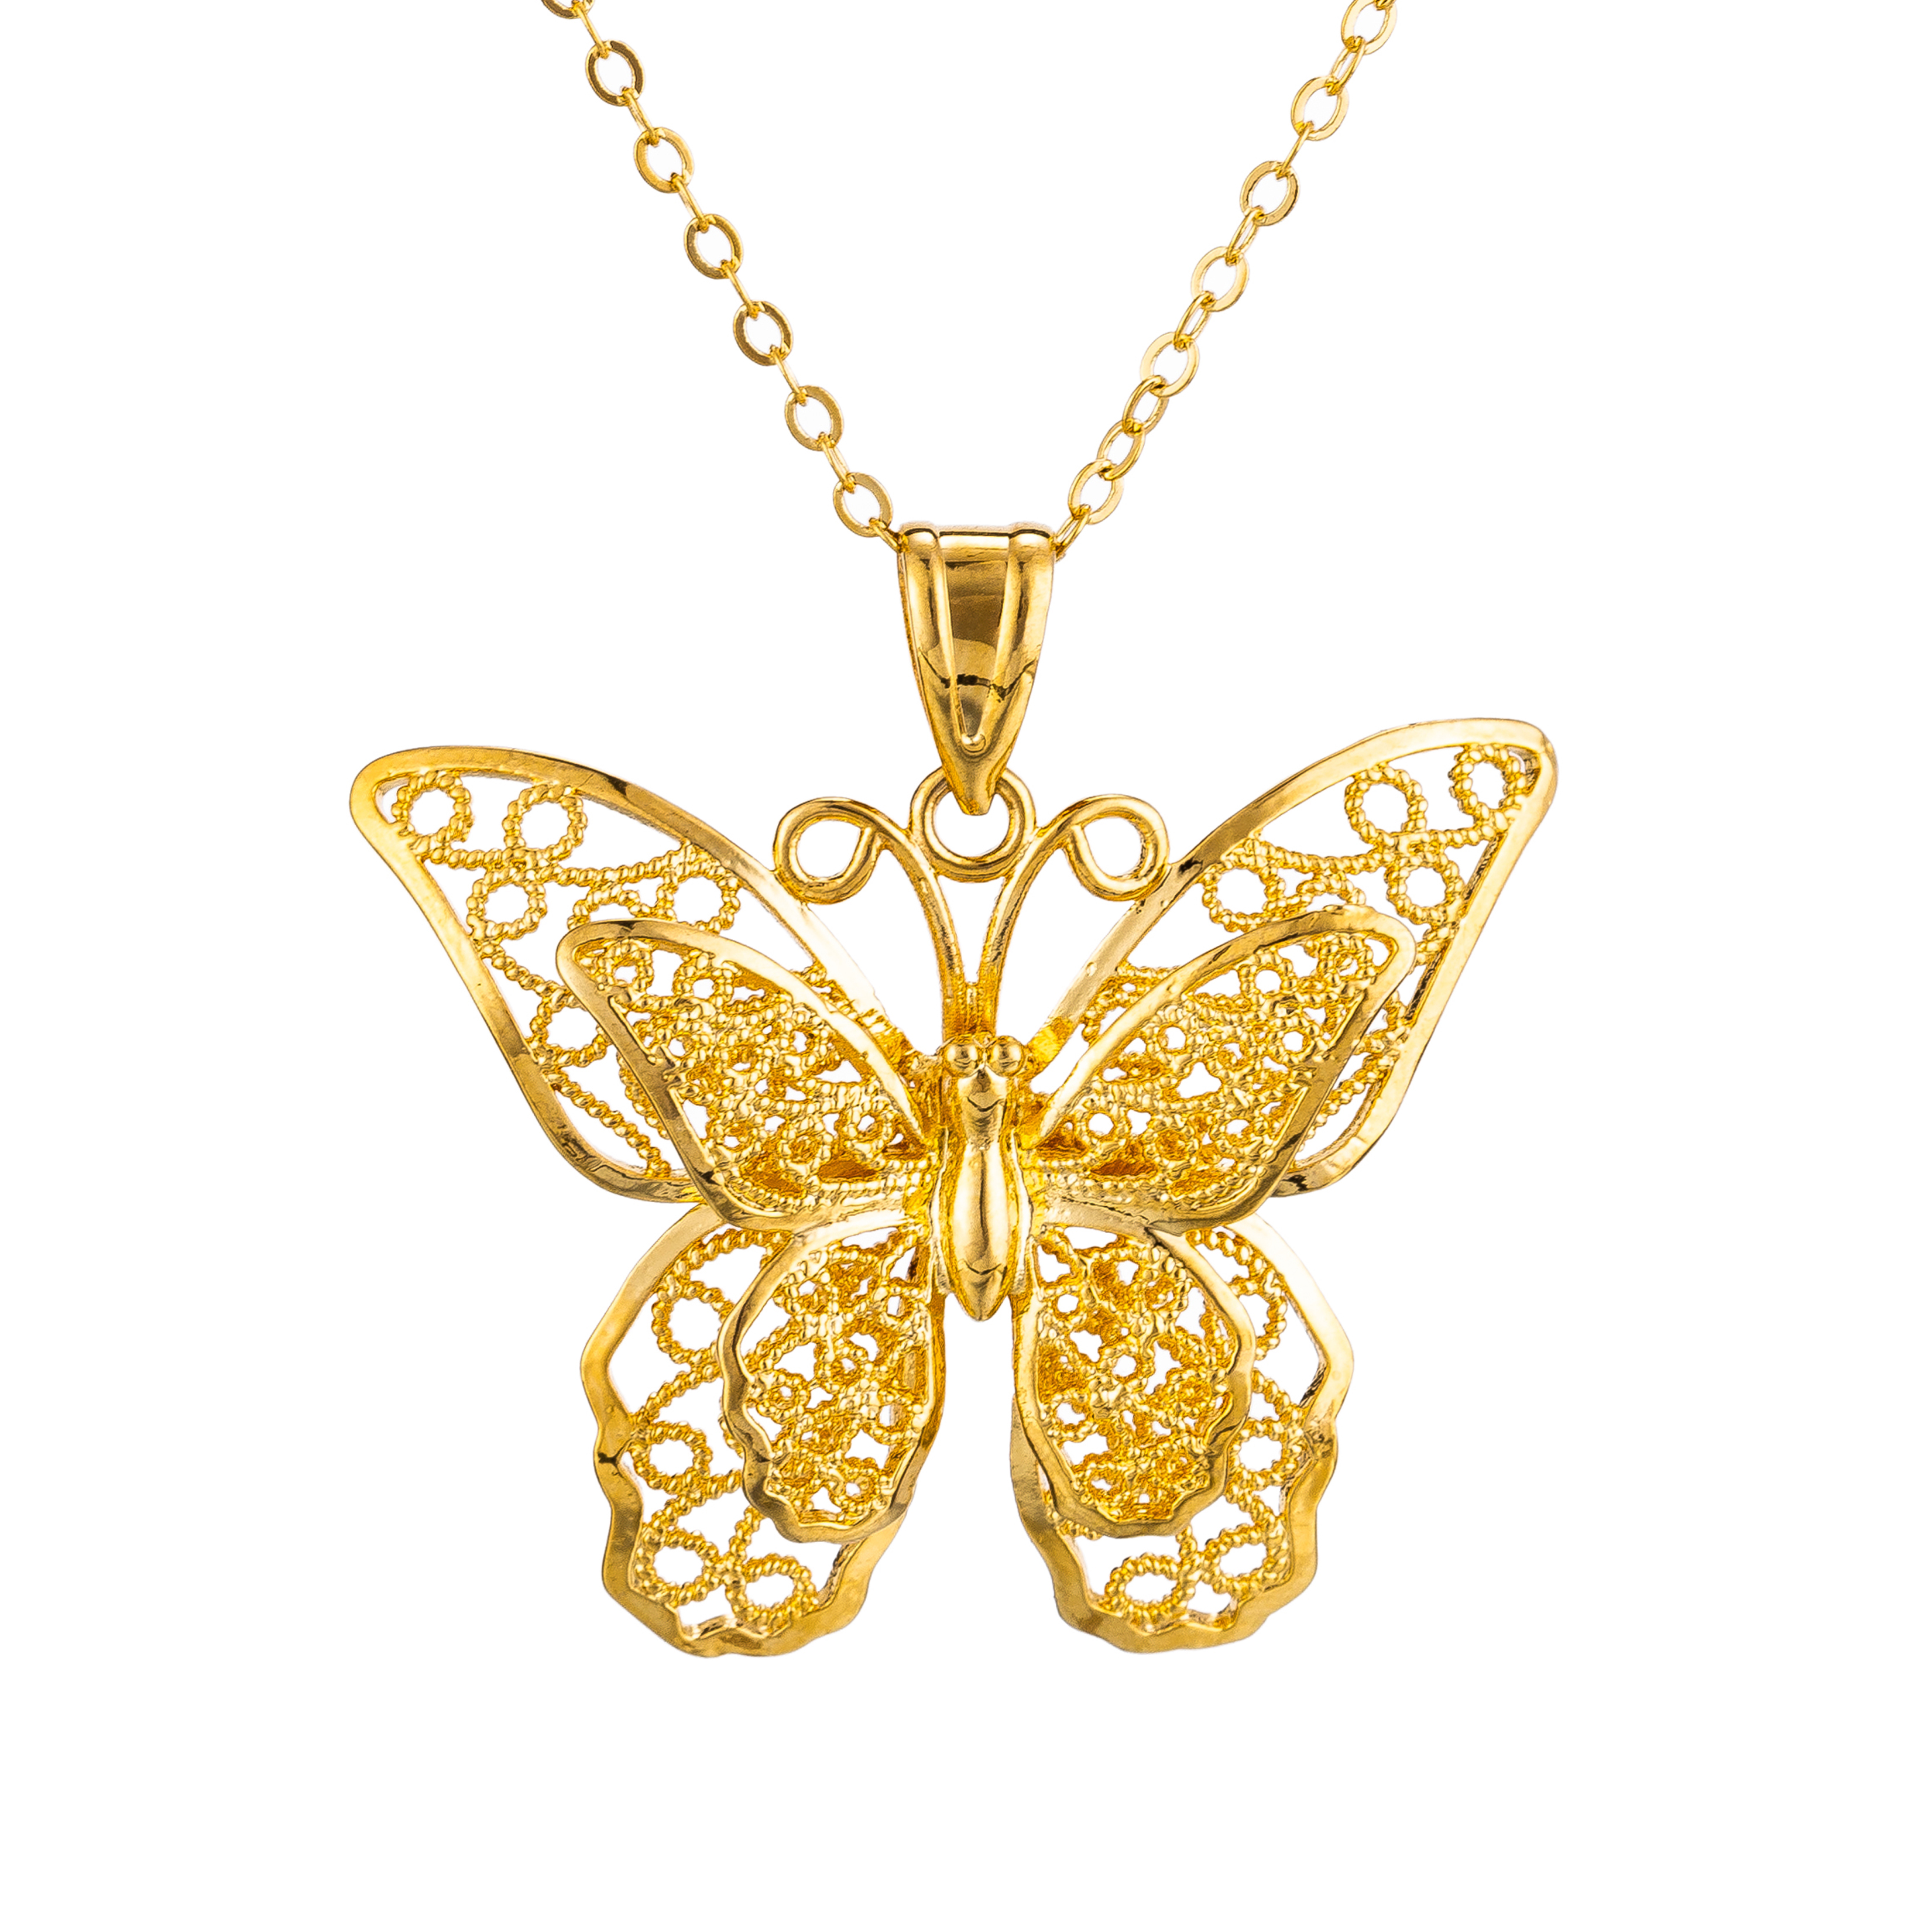 Gold Color Big Butterfly Pendant Necklace for Women Girls Hollow Layered Butterfly Link Chain Wedding Birthday Gifts